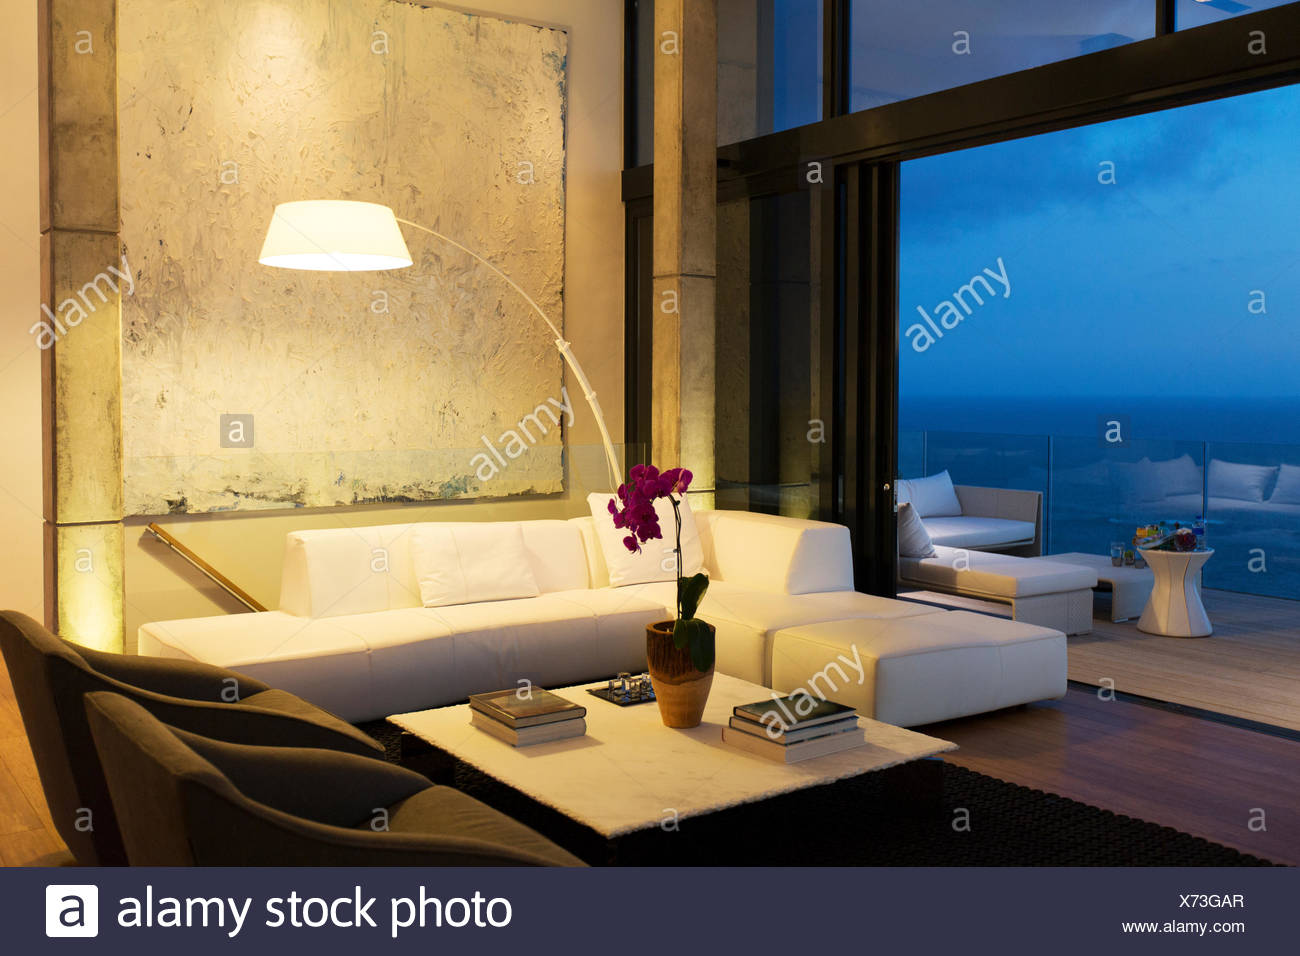 Lamp and sofa in modern living room - Stock Image